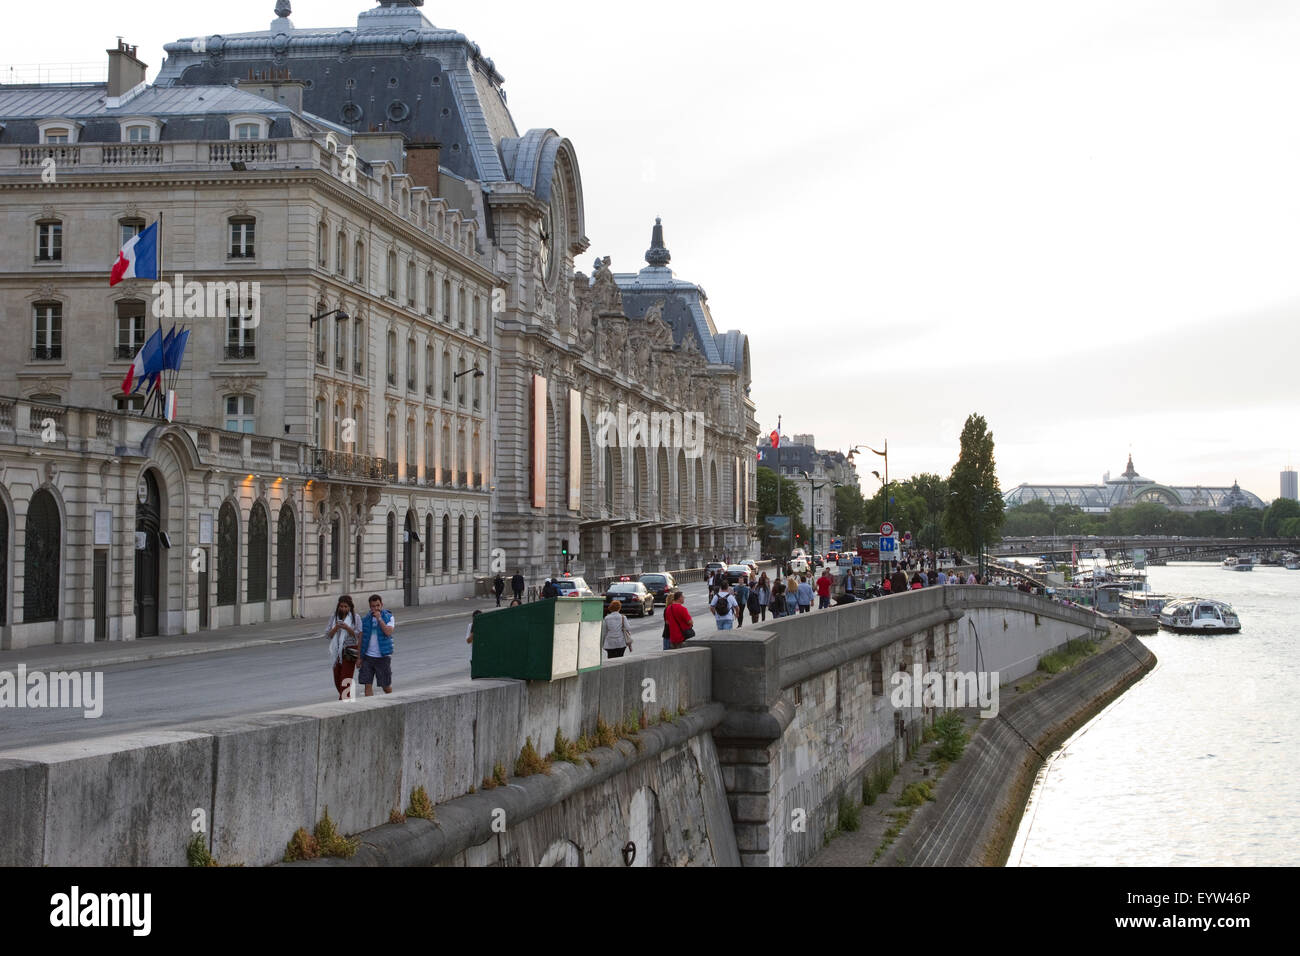 View from the Pont Royal looking towards Musée d'Orsay in Paris, France. - Stock Image